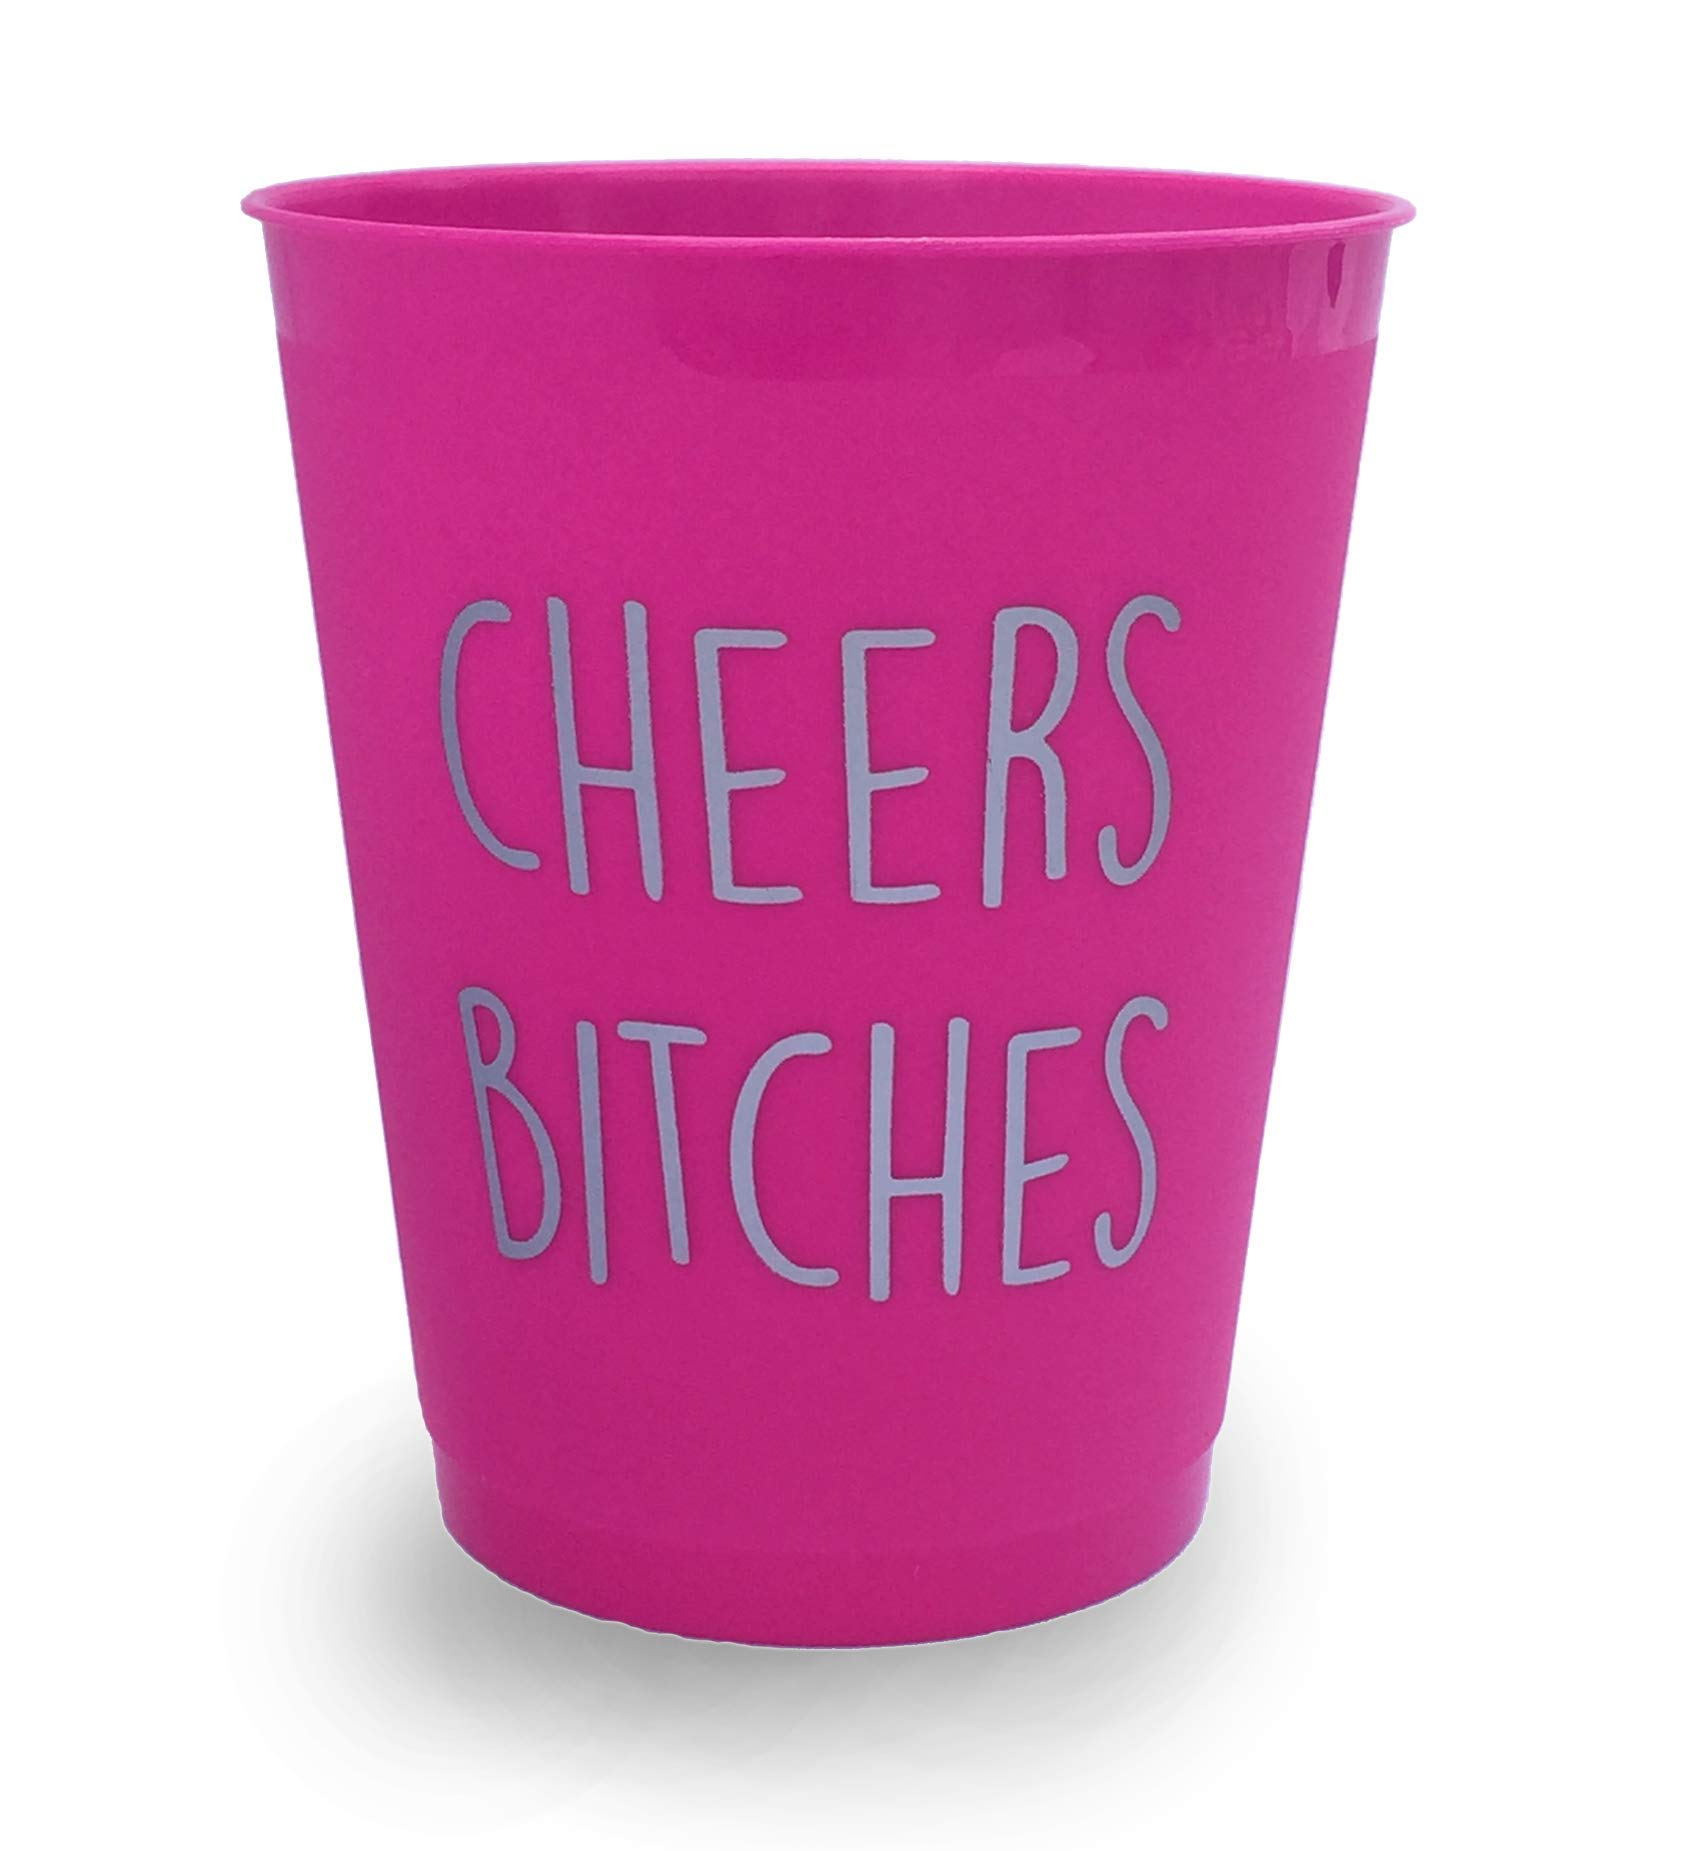 Cheers B*tches Party Drinking Cups - Bachelorette/Night Out/Celebration -Pack of 10 Hot Pink & Silver